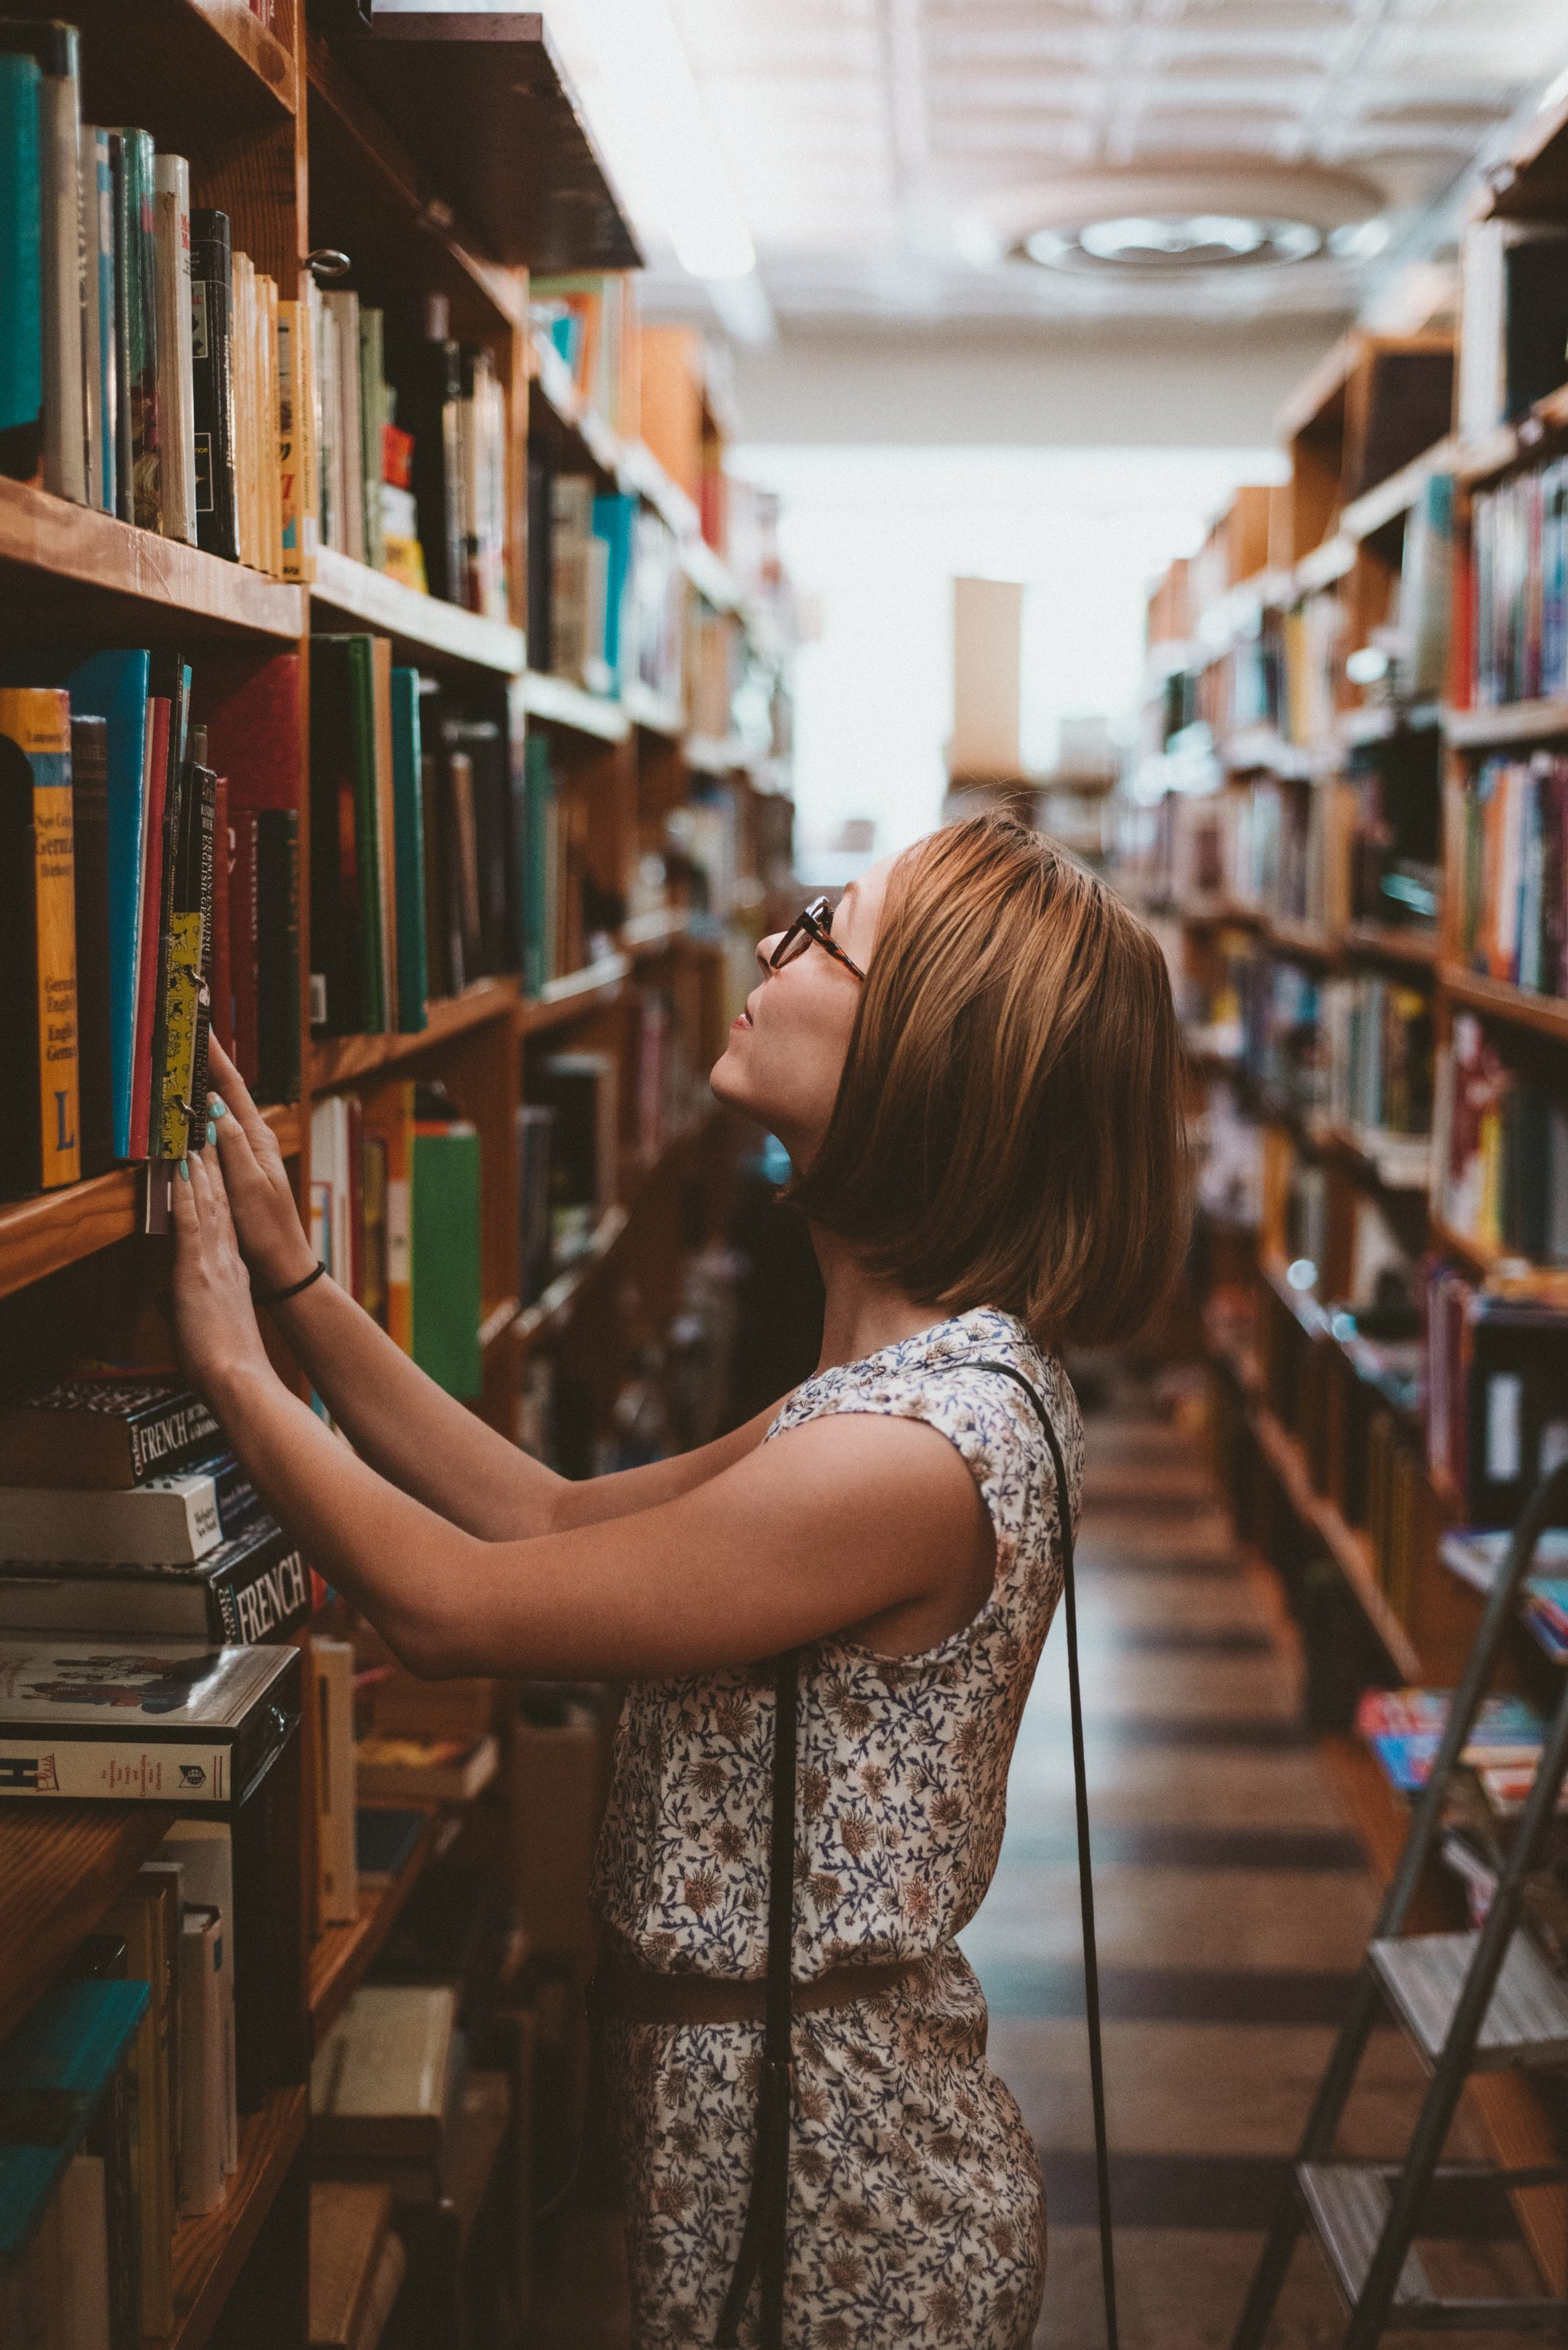 Women in Library looking a books high on the shelf